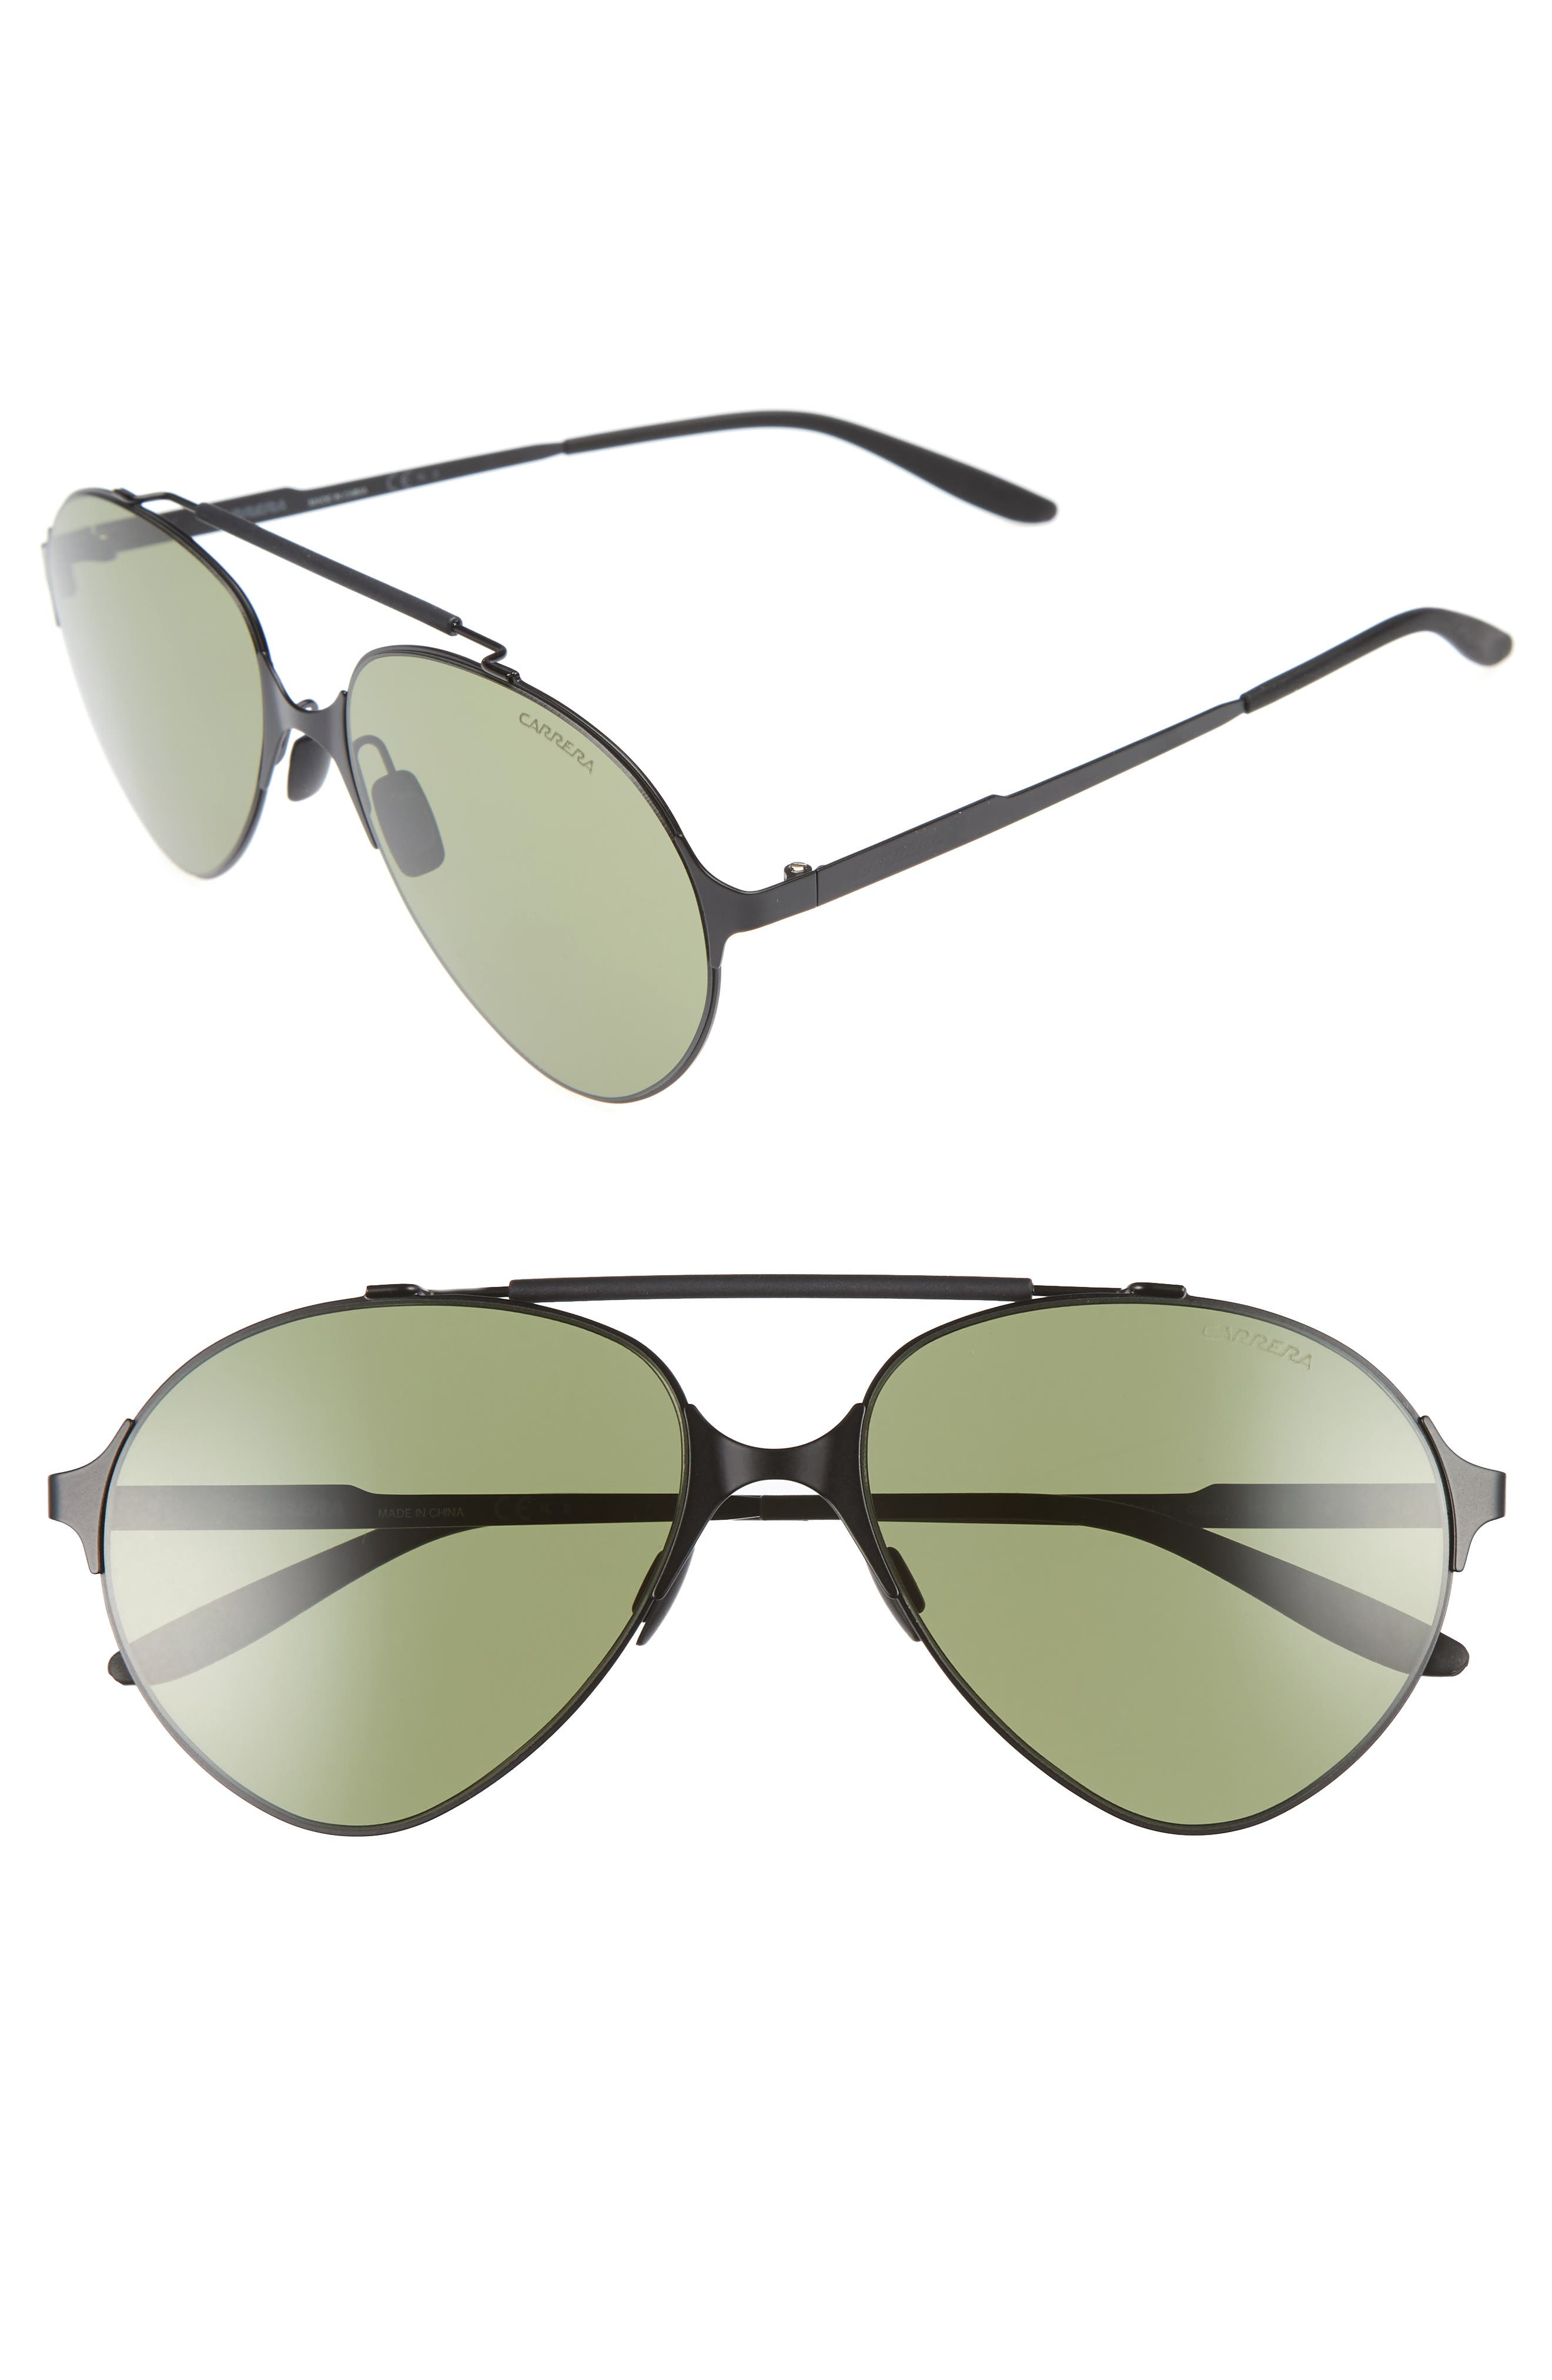 CARRERA EYEWEAR Carrera 58mm Gradient Pilot Sunglasses